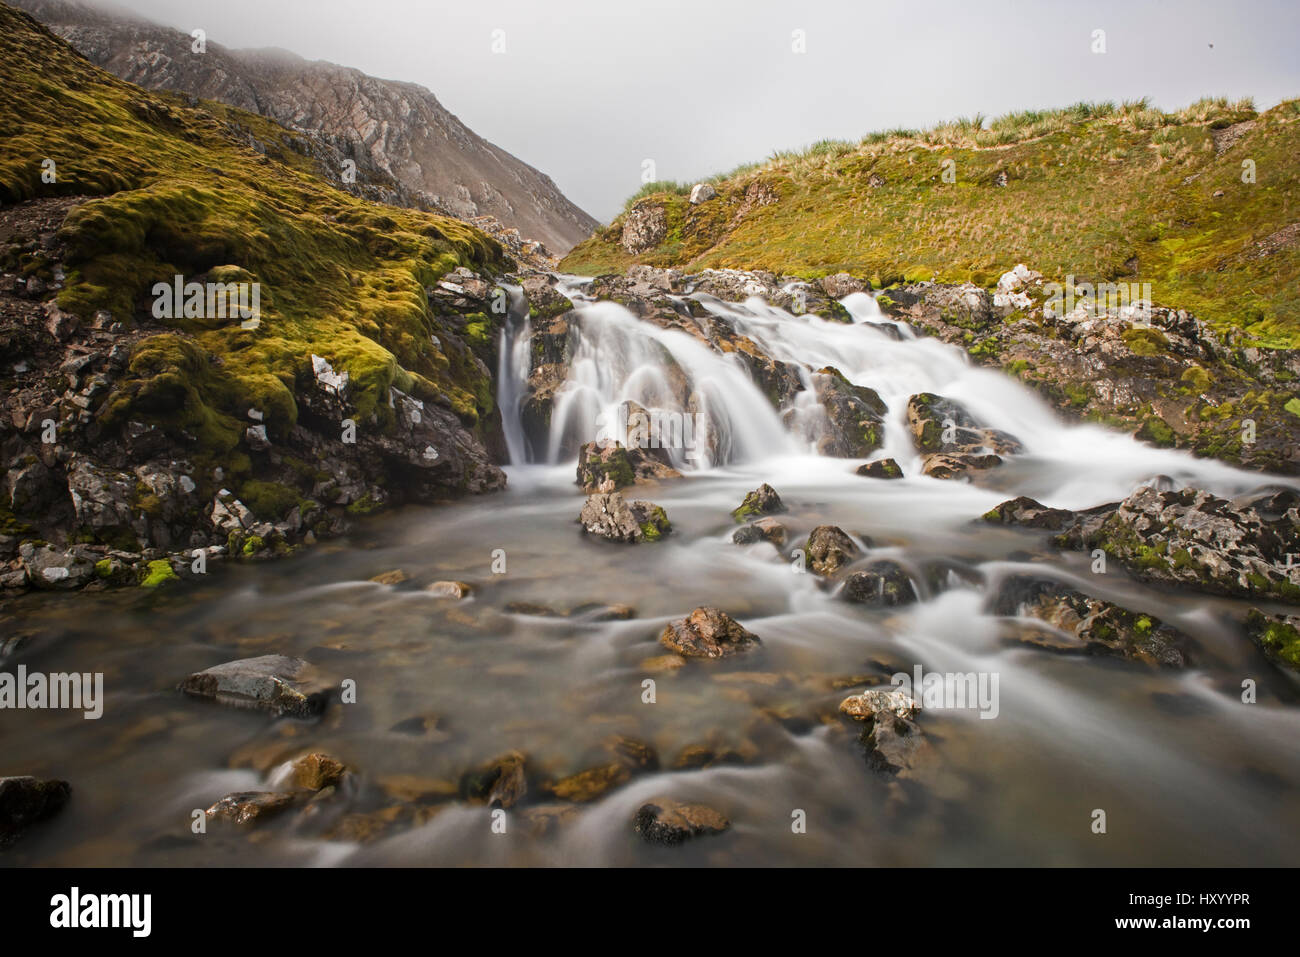 Stream in valley near Coal Harbour, South Georgia. January 2015. - Stock Image